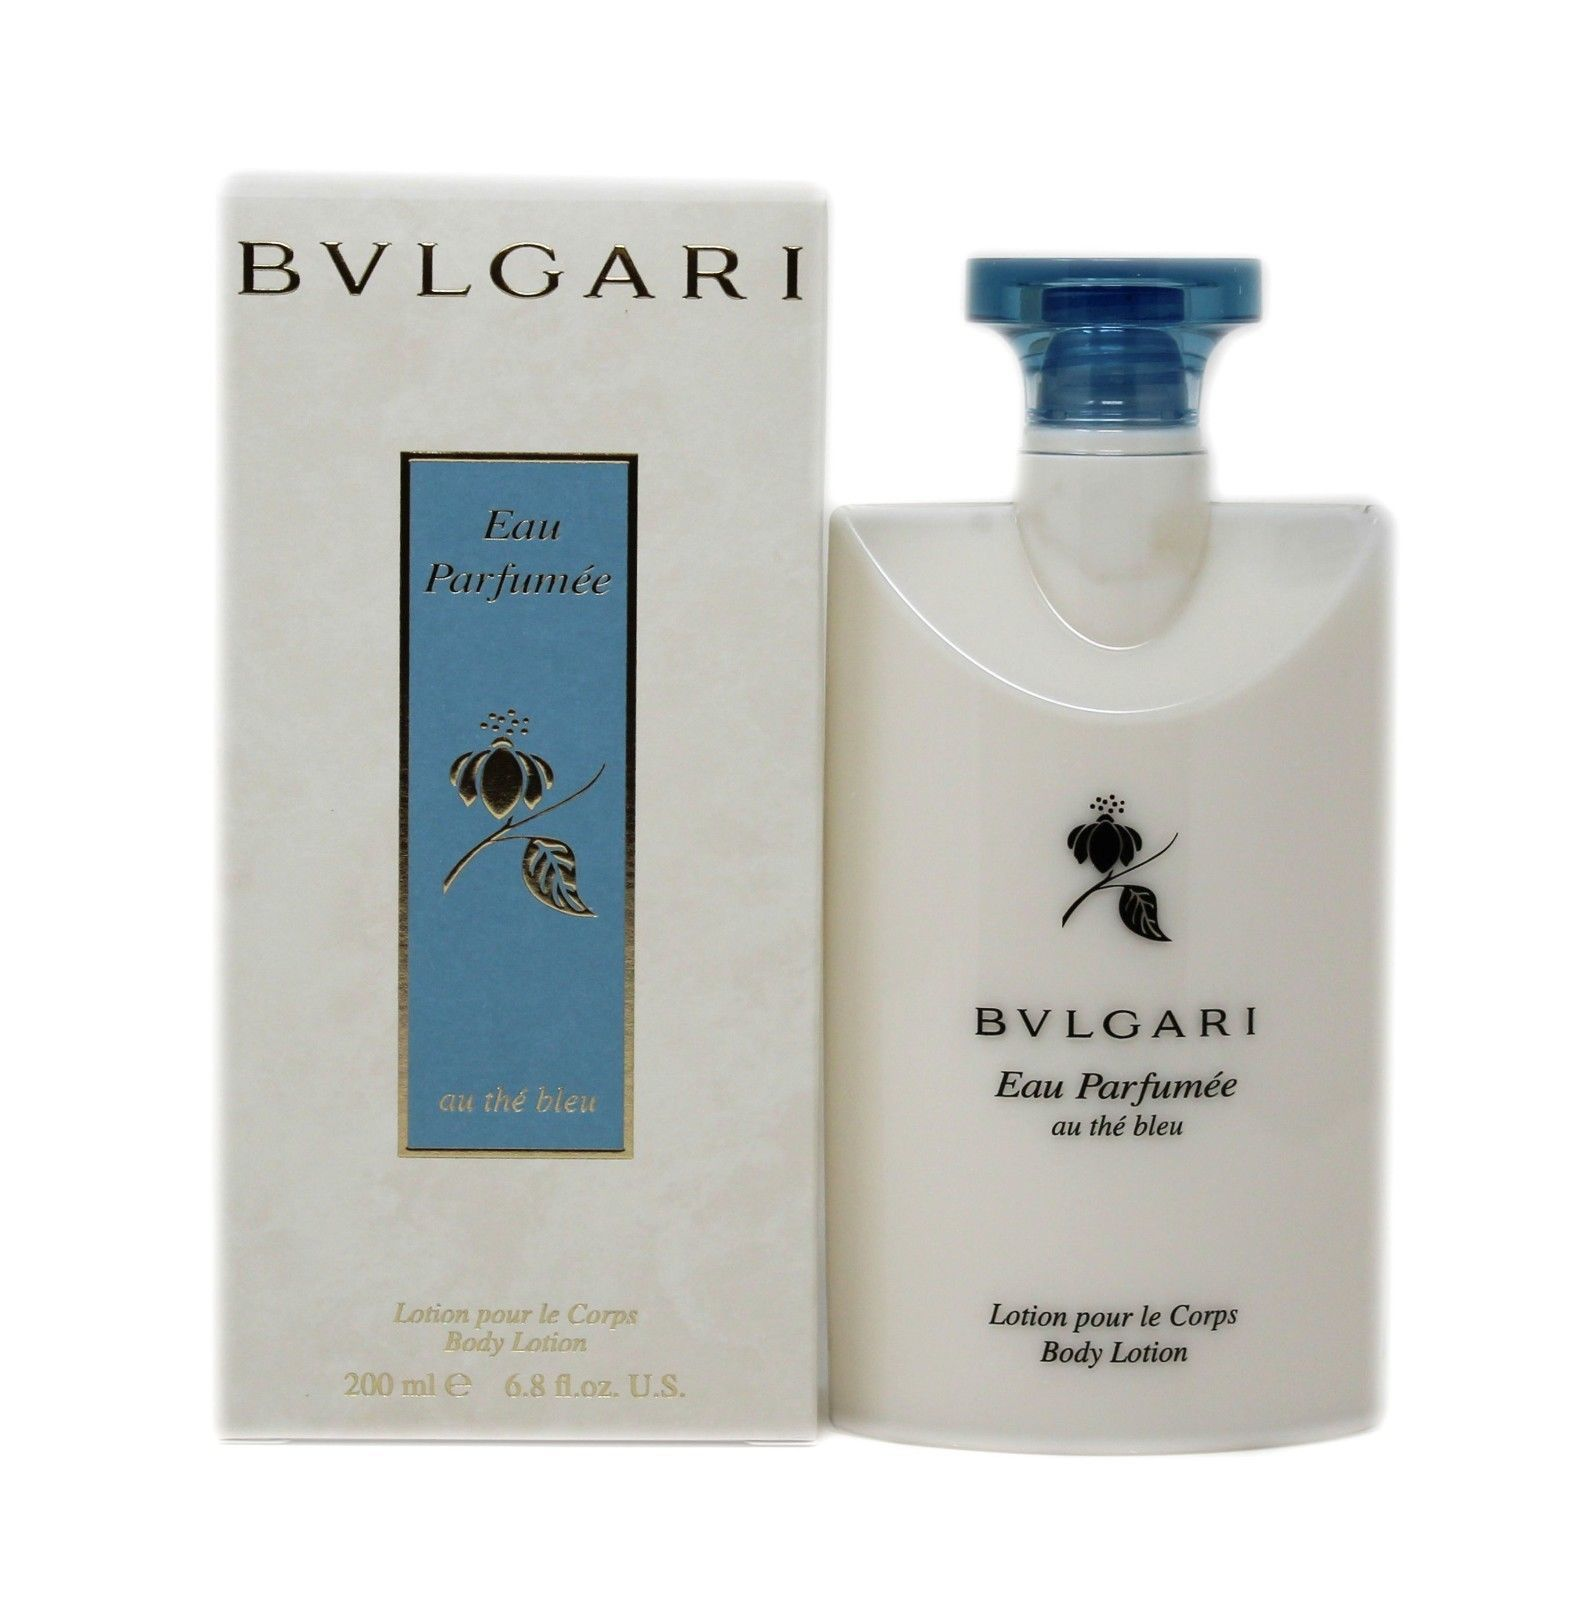 Primary image for BVLGARI EAU PARFUMEE AU THE BLEU BODY LOTION 200 ML/6.8 FL.OZ. NIB-BV10036889